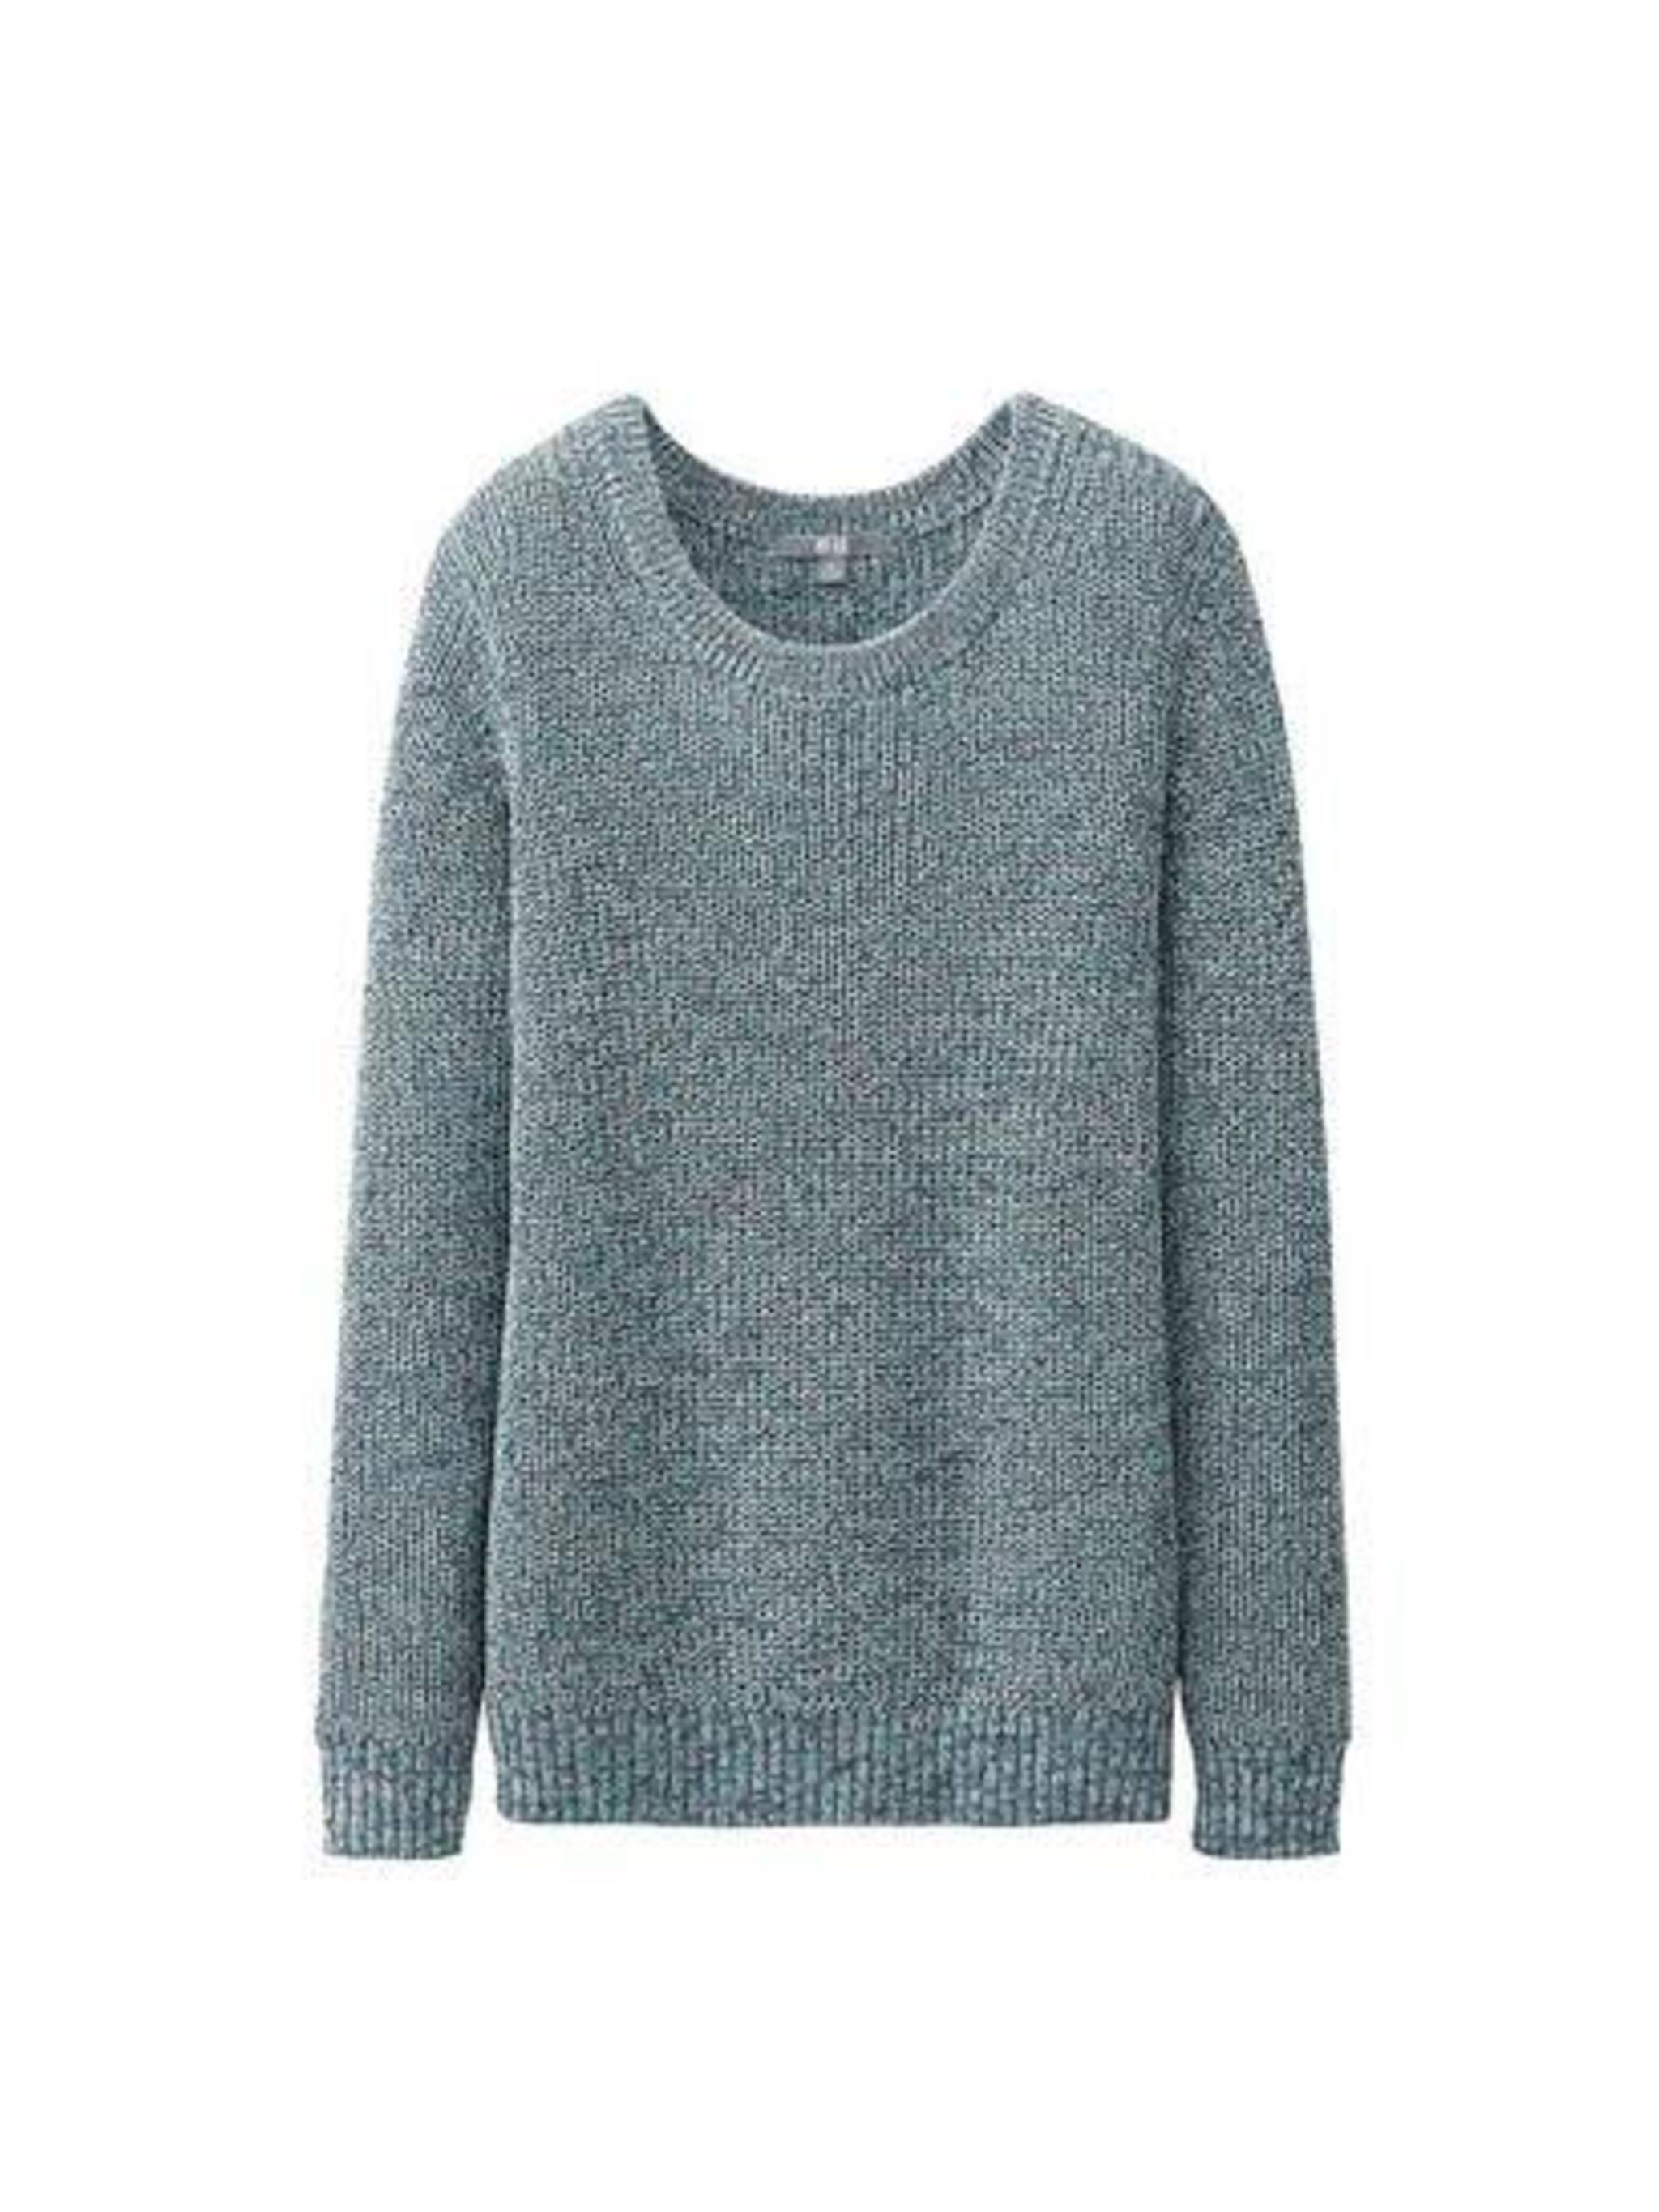 "<p>Layer it up with this <a href=""http://www.uniqlo.com/uk/store/goods/087239"">Uniqlo</a> jumper, £19.90</p>"